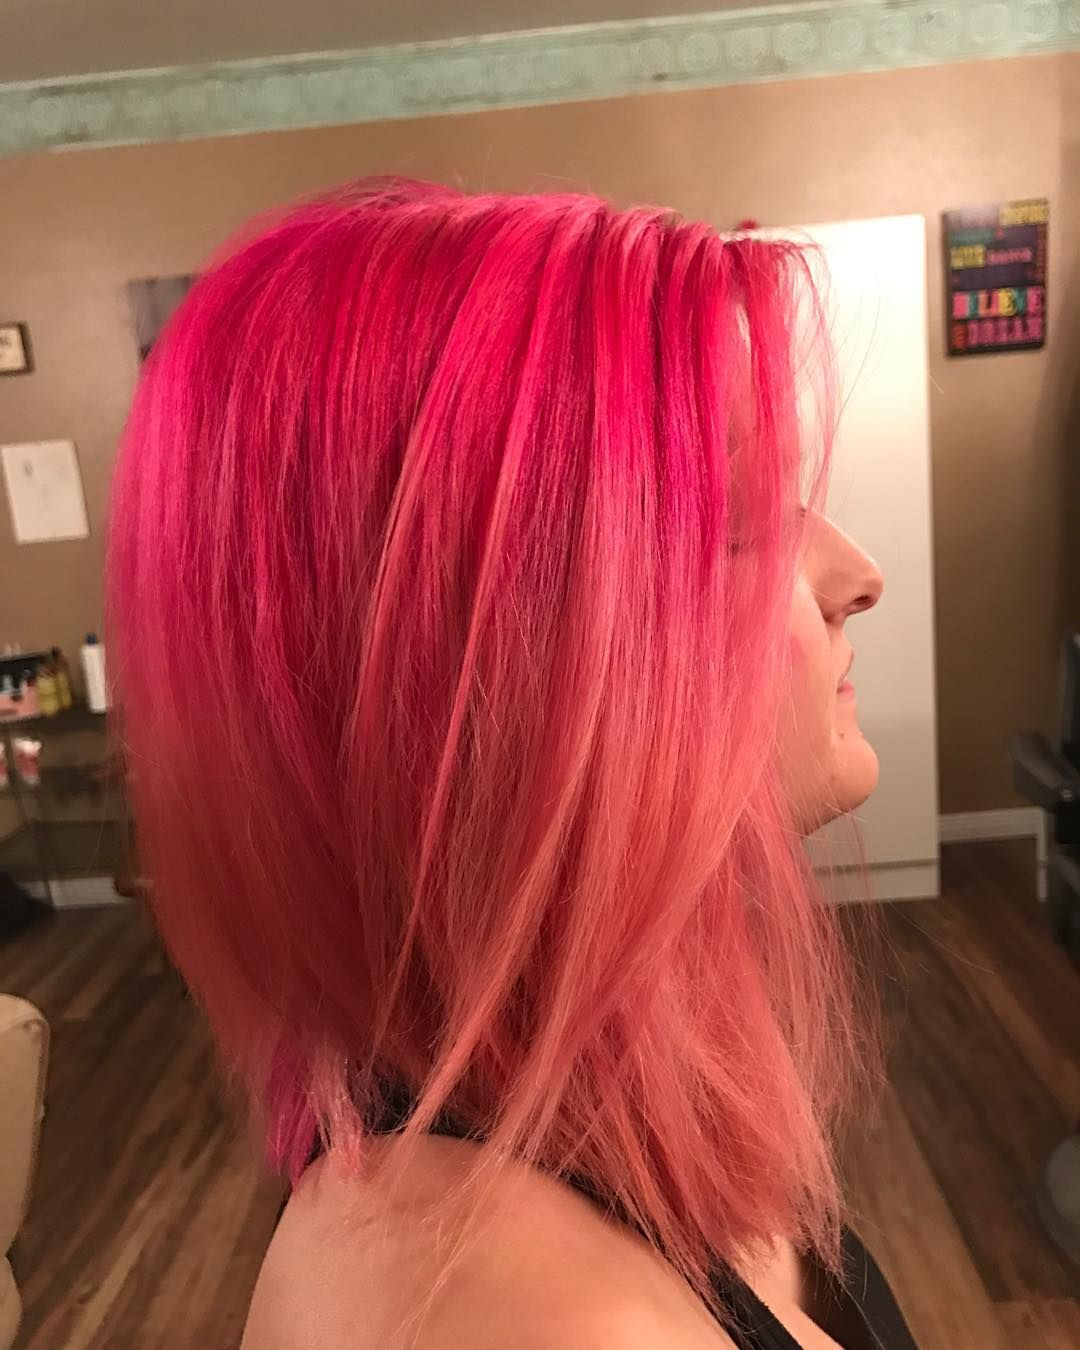 She's passionate about her pink ��������#pink #pravana #matrix #rosequarts #aline #cut #mywork #haircut #haircolor #hairstylist #hair #cosmetology #cosmetologist #americansalon #behindthechair #modernsalon #amhairartistry #mywork #idaho #idahome http://tipsrazzi.com/ipost/1516465351453574001/?code=BULkTPblANx